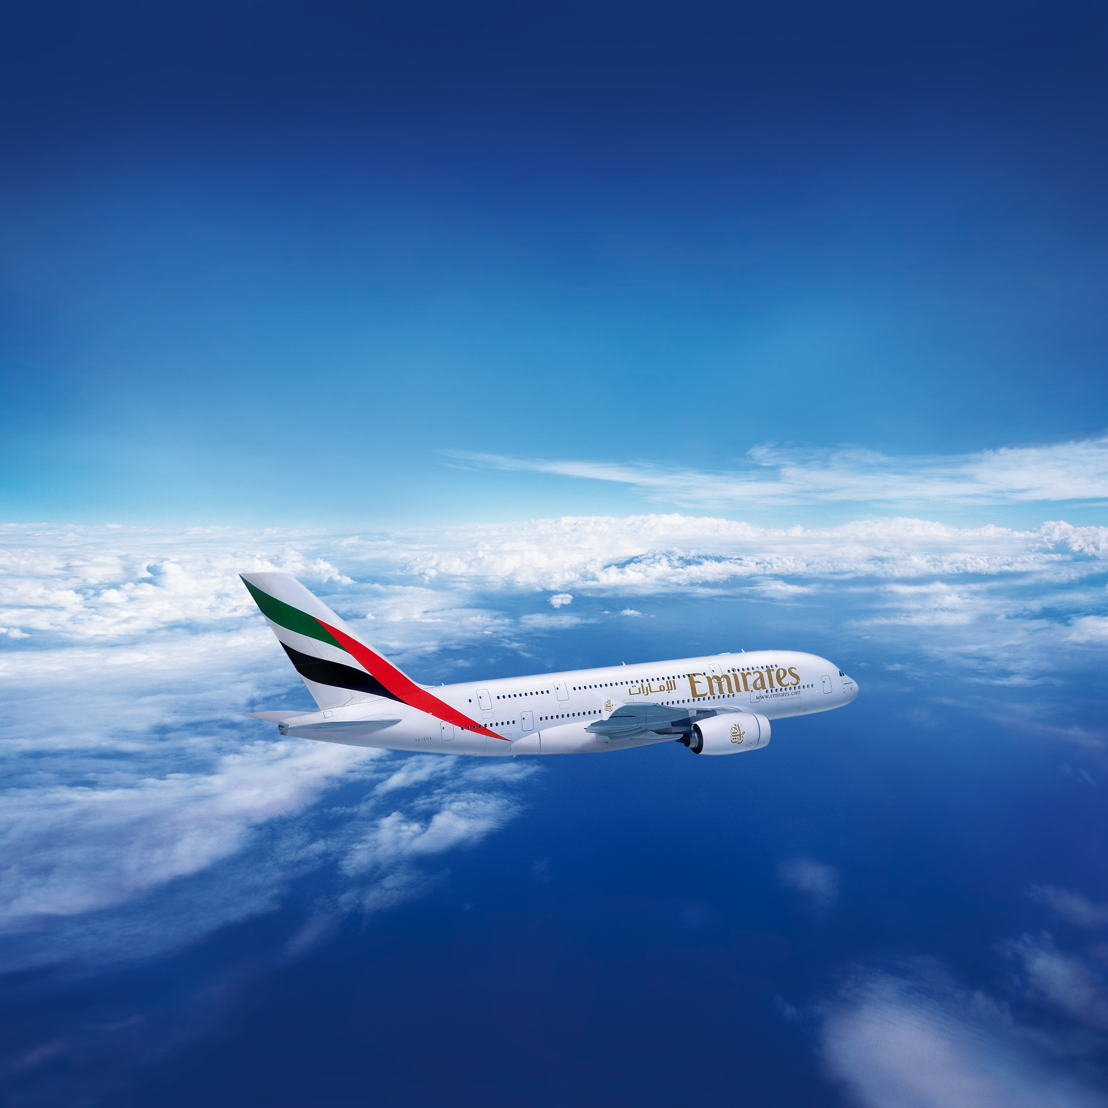 Emirates will be upgrading one of its nine daily flights between Dubai and Doha to an Airbus A380 from 1 December 2016.